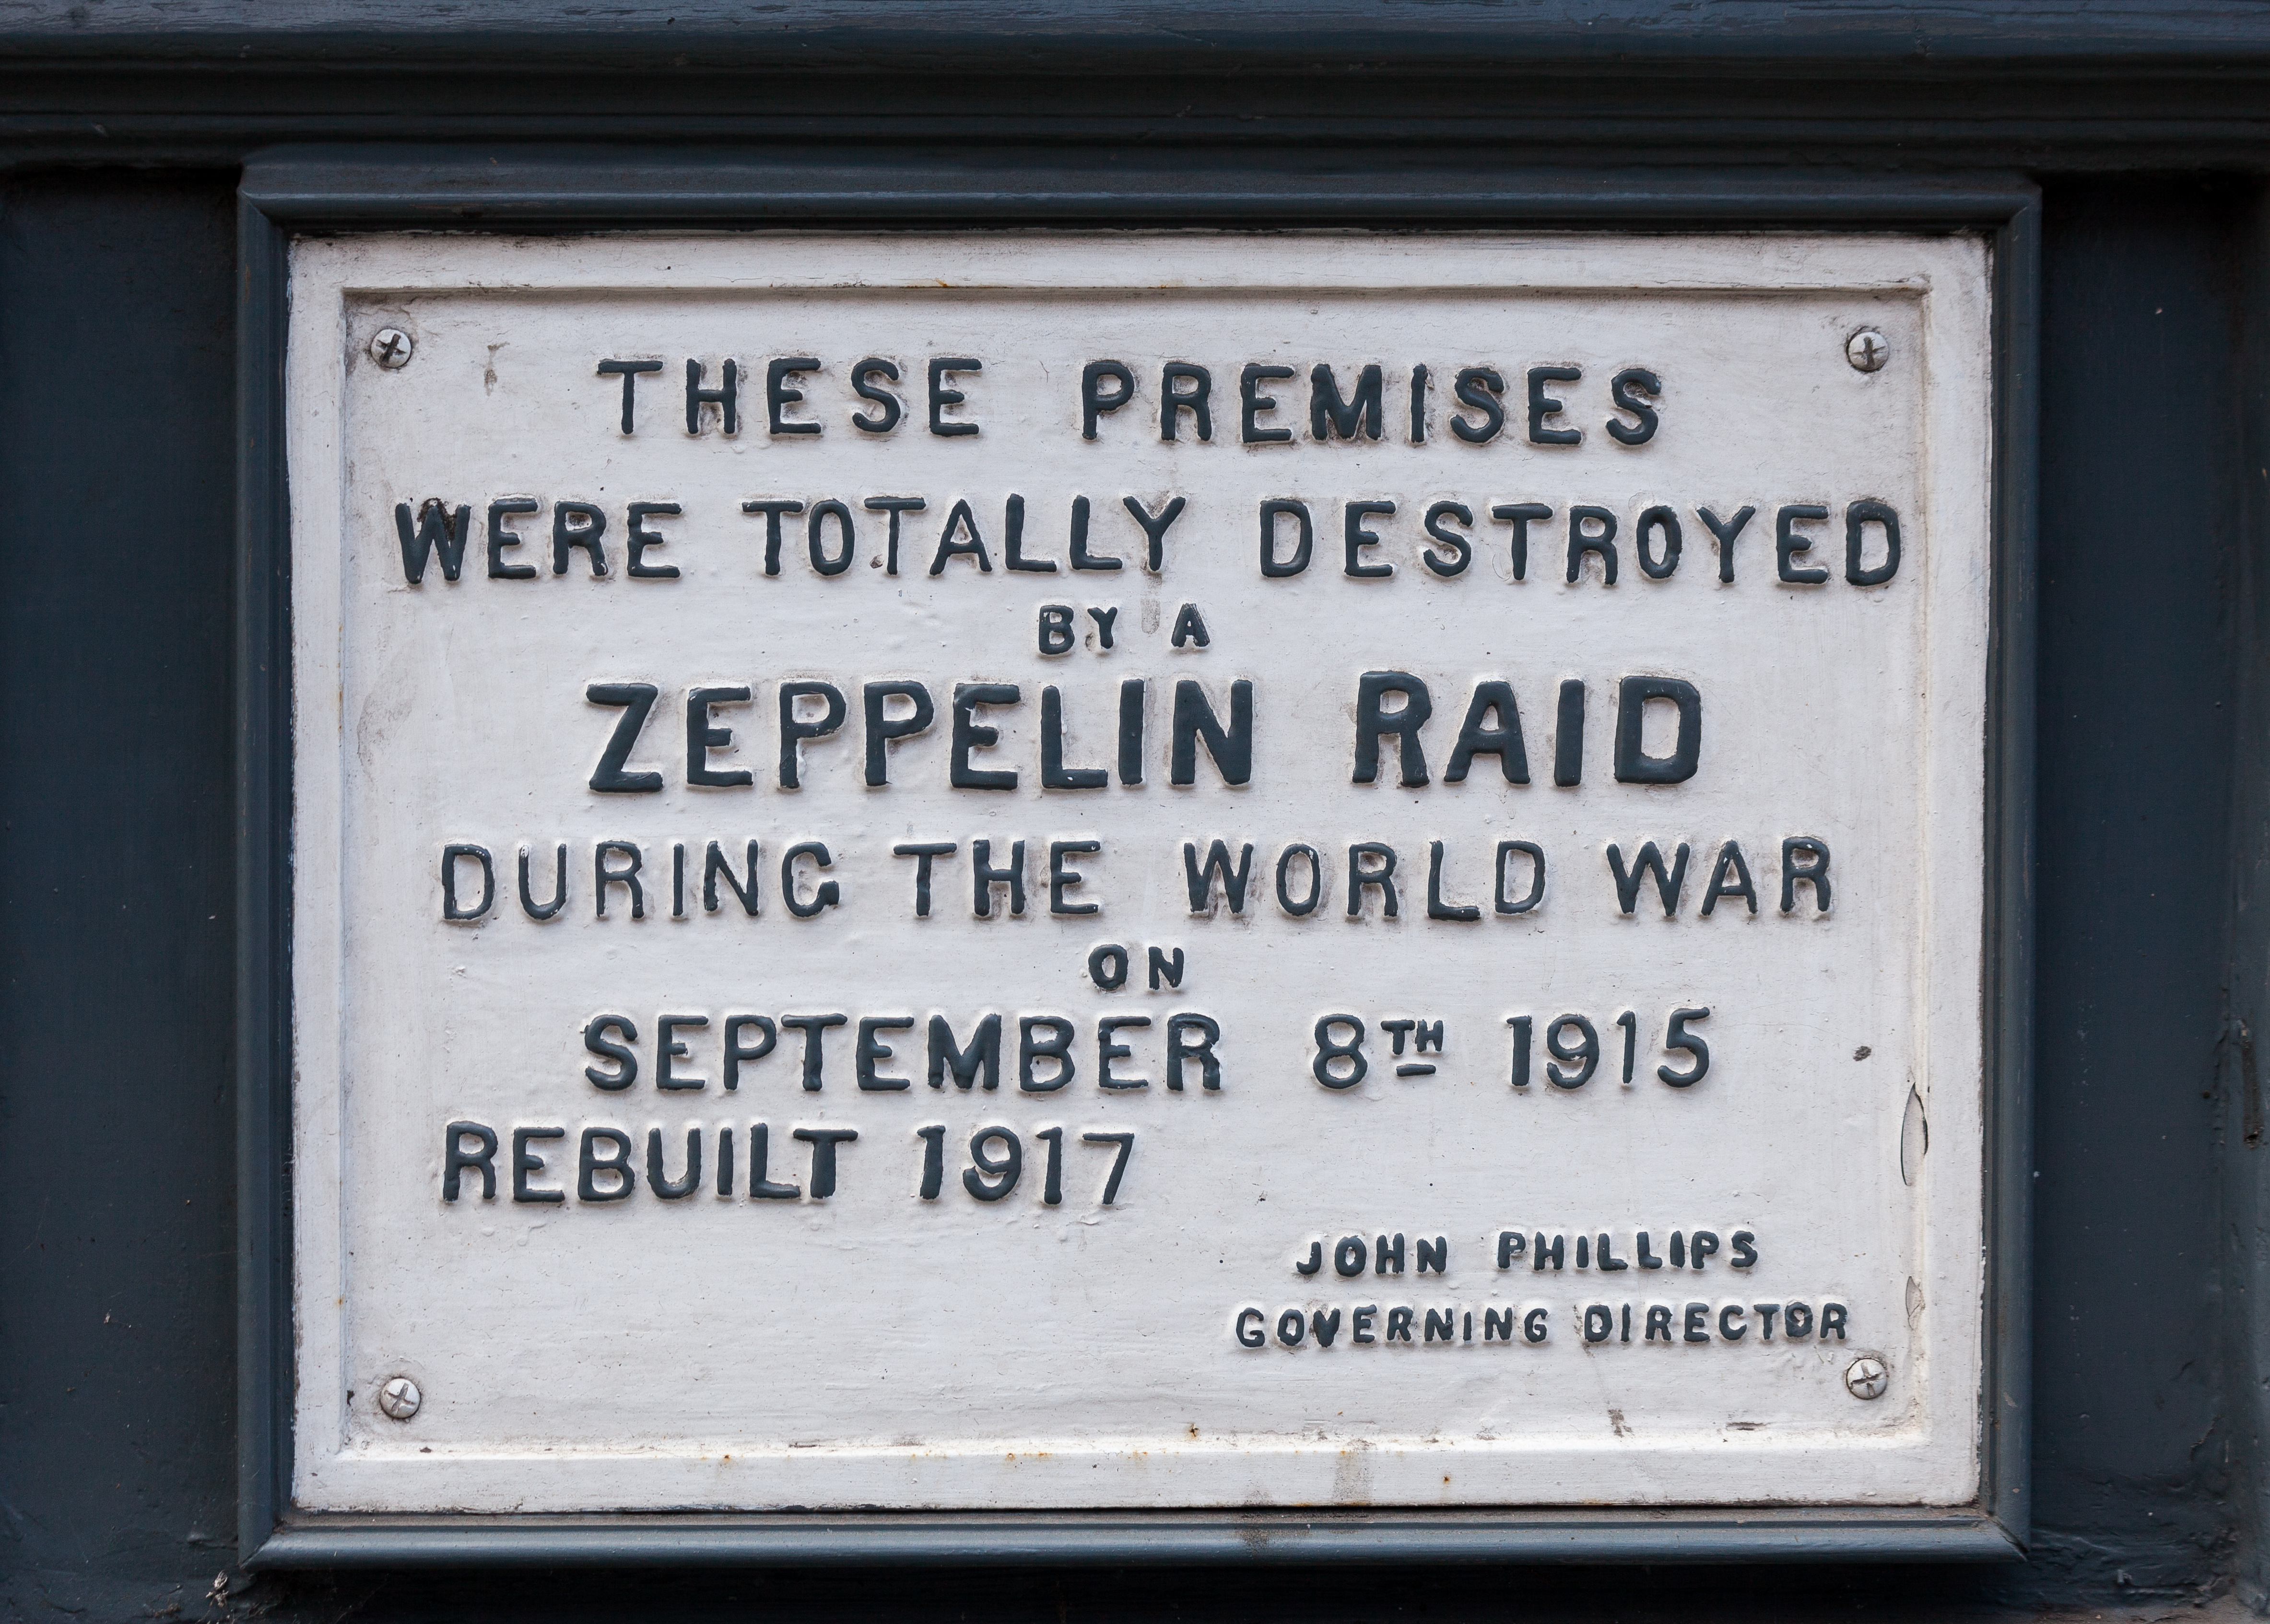 Zeppelin_Raid_plaque,_61_Farringdon_Road,_London,_England,_IMG_5217_edit